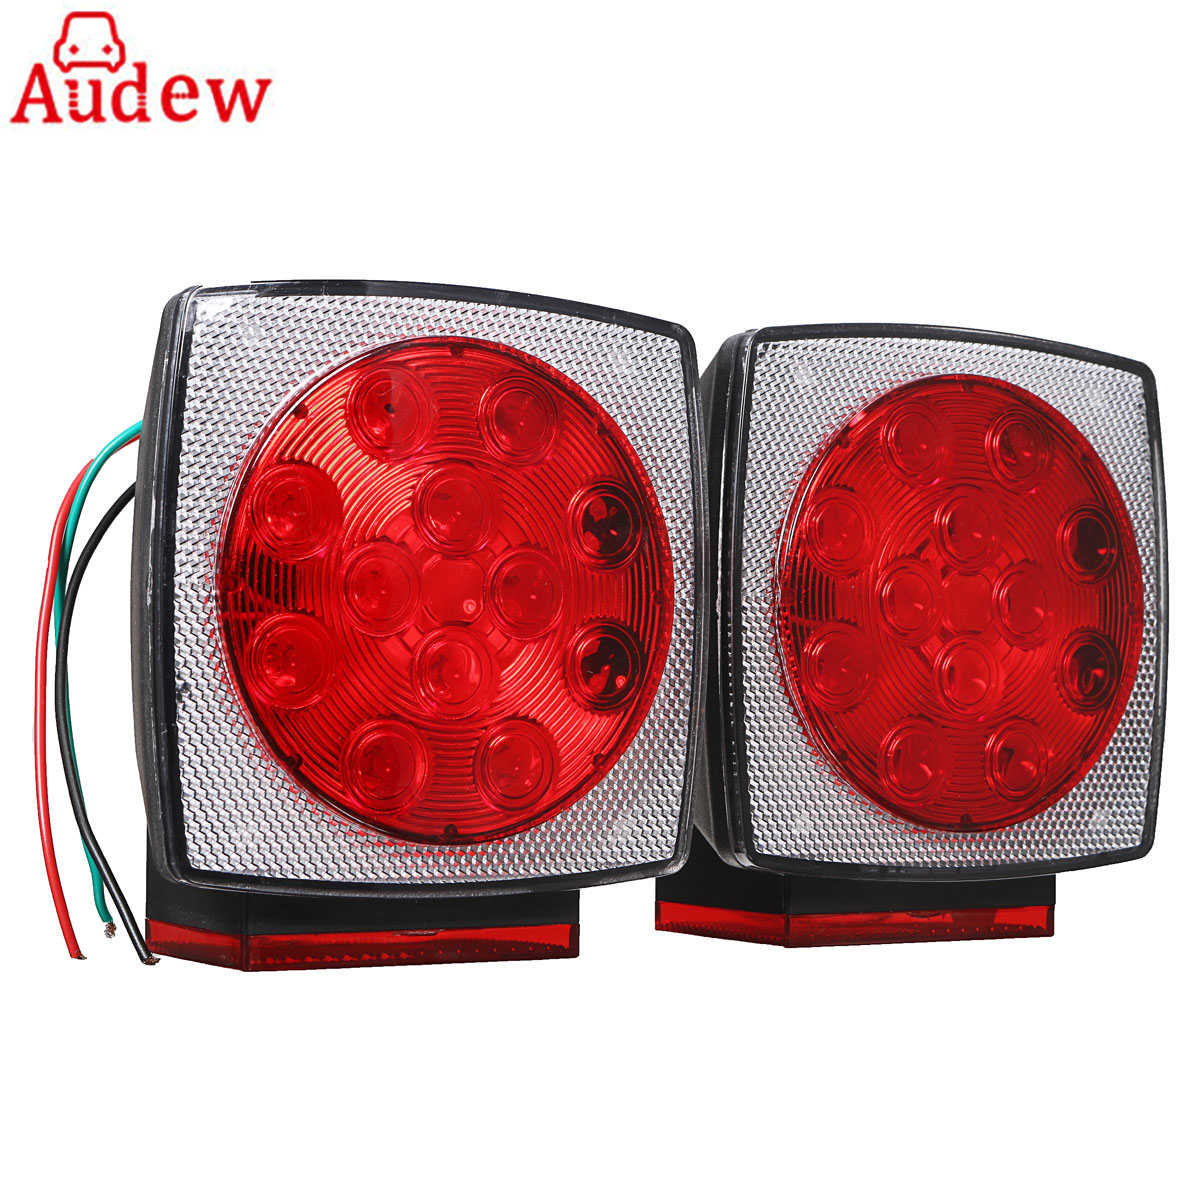 2Pcs LED Car Trailer Rear Brake Stop Light Lamp Tail Turn Signal Lights Tail License Plate Lamp for Vehicle Trailer Truck 2pcs 20 led car truck red amber white led trailer waterproof tail lights turn signal brake light stop rear lamp dc 12v cy798 cn